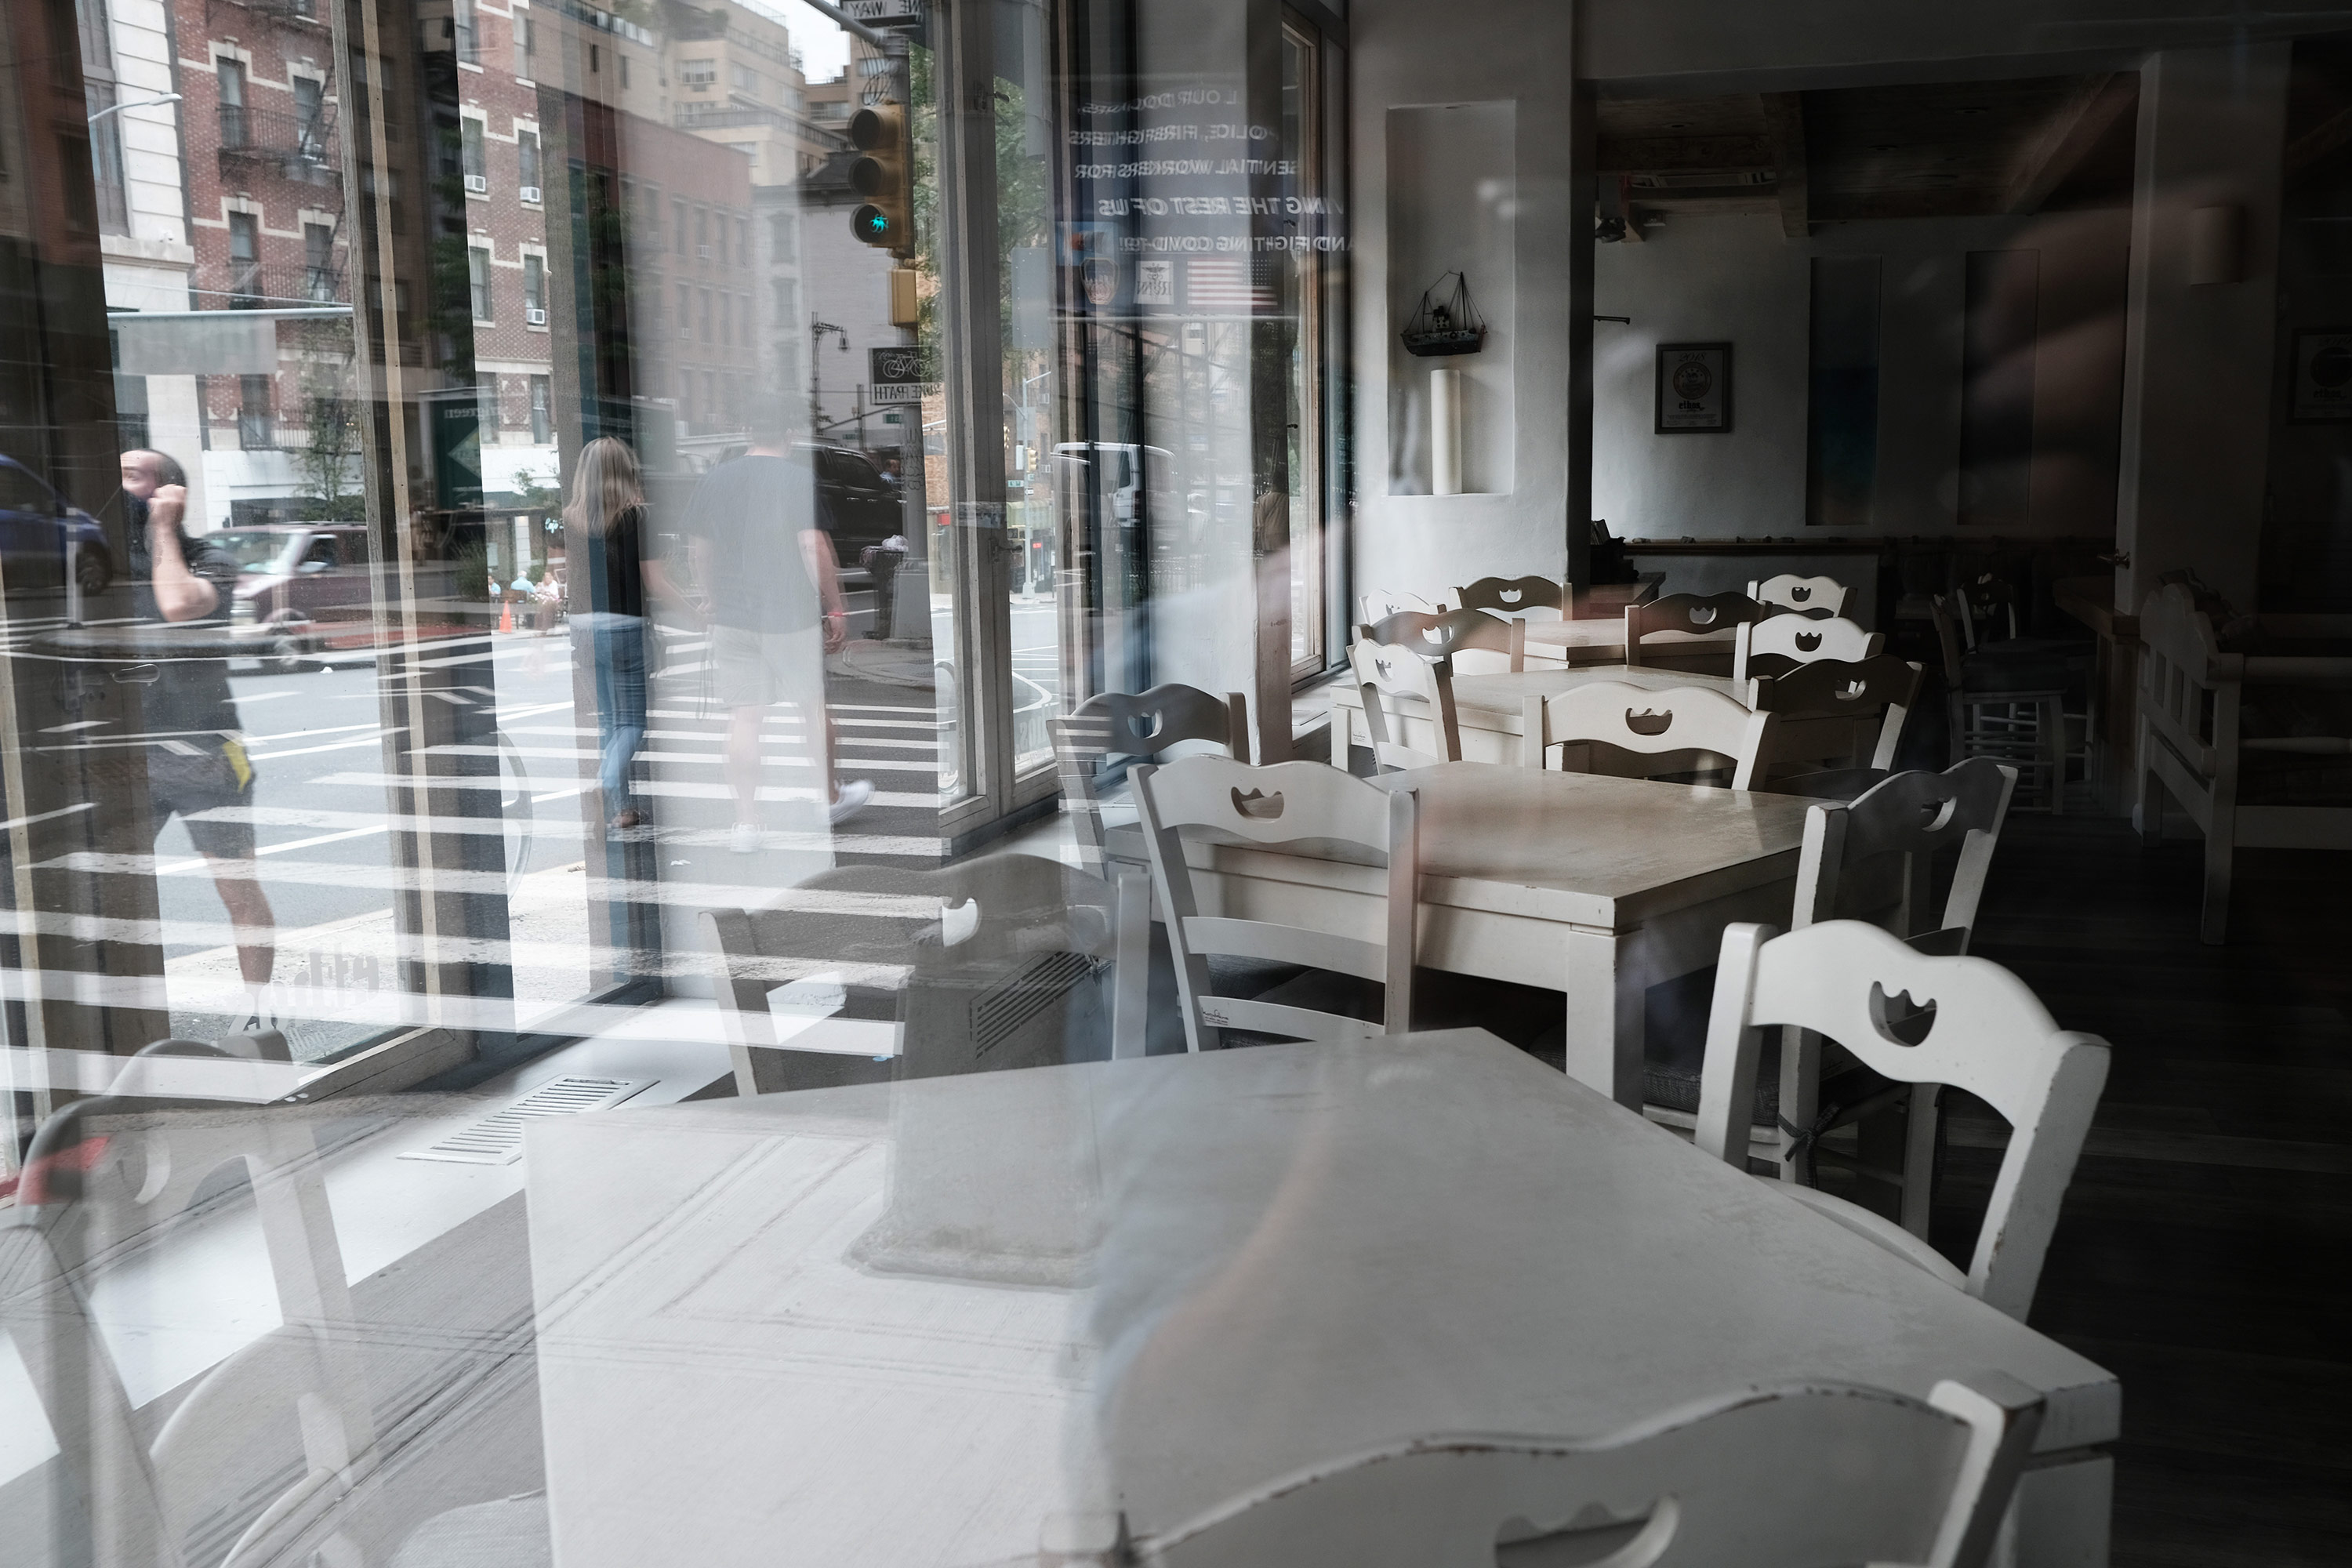 A row of white chairs and tables in an empty restaurant are facing a window looking out into a Manhattan street.